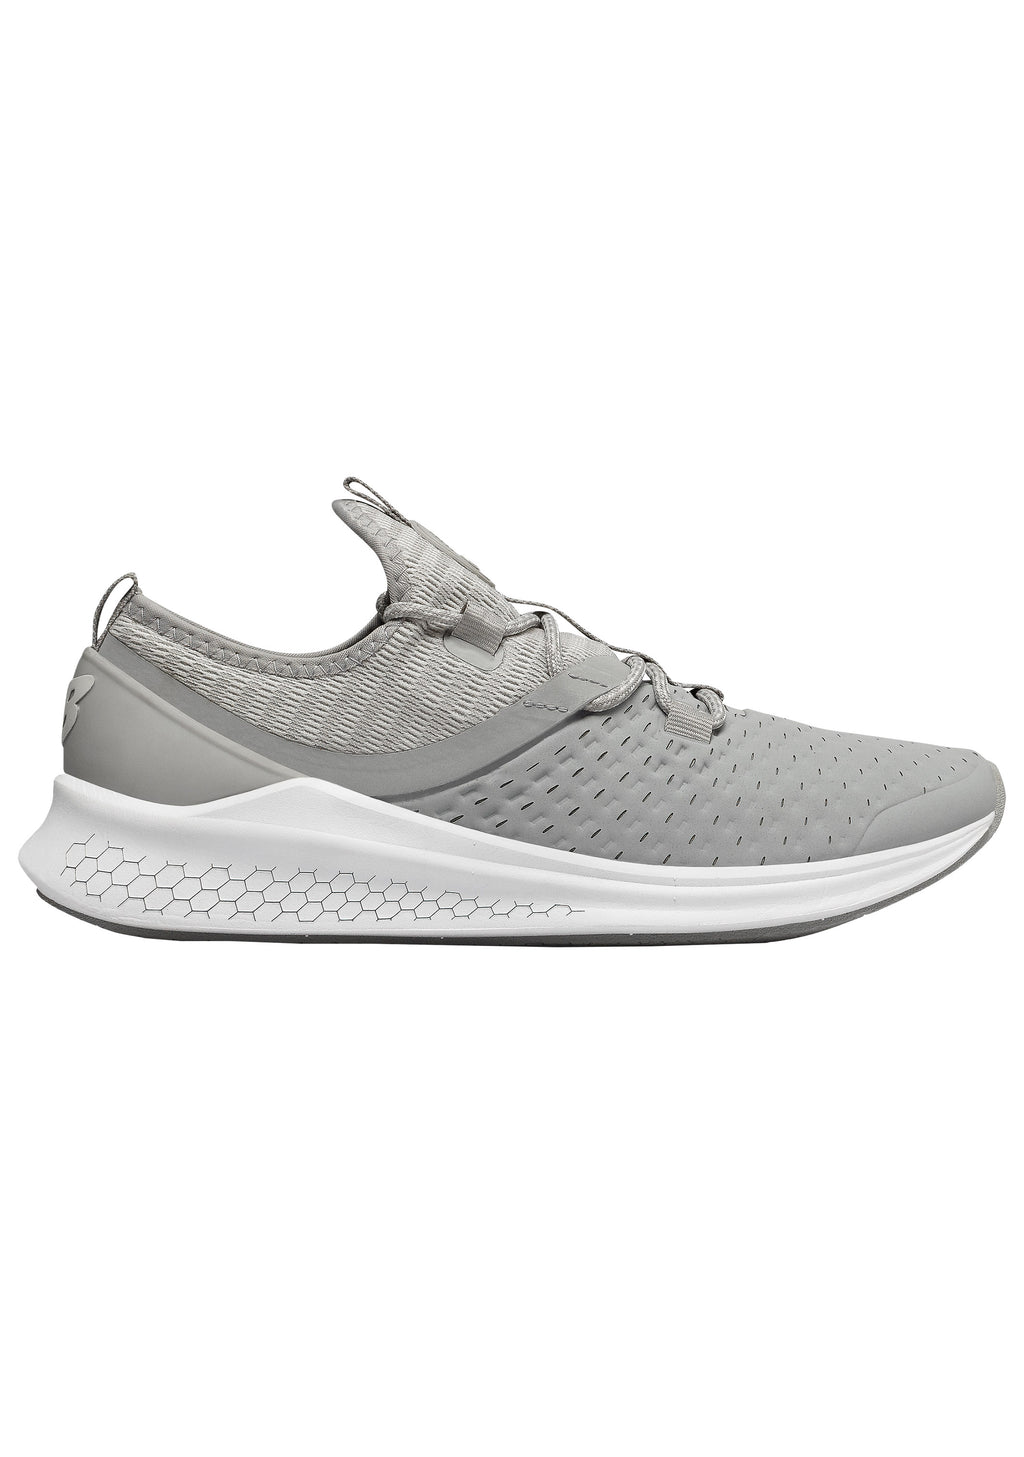 NEW BALANCE WOMENS FRESH FOAM LAZR <BR> WLAZRHS